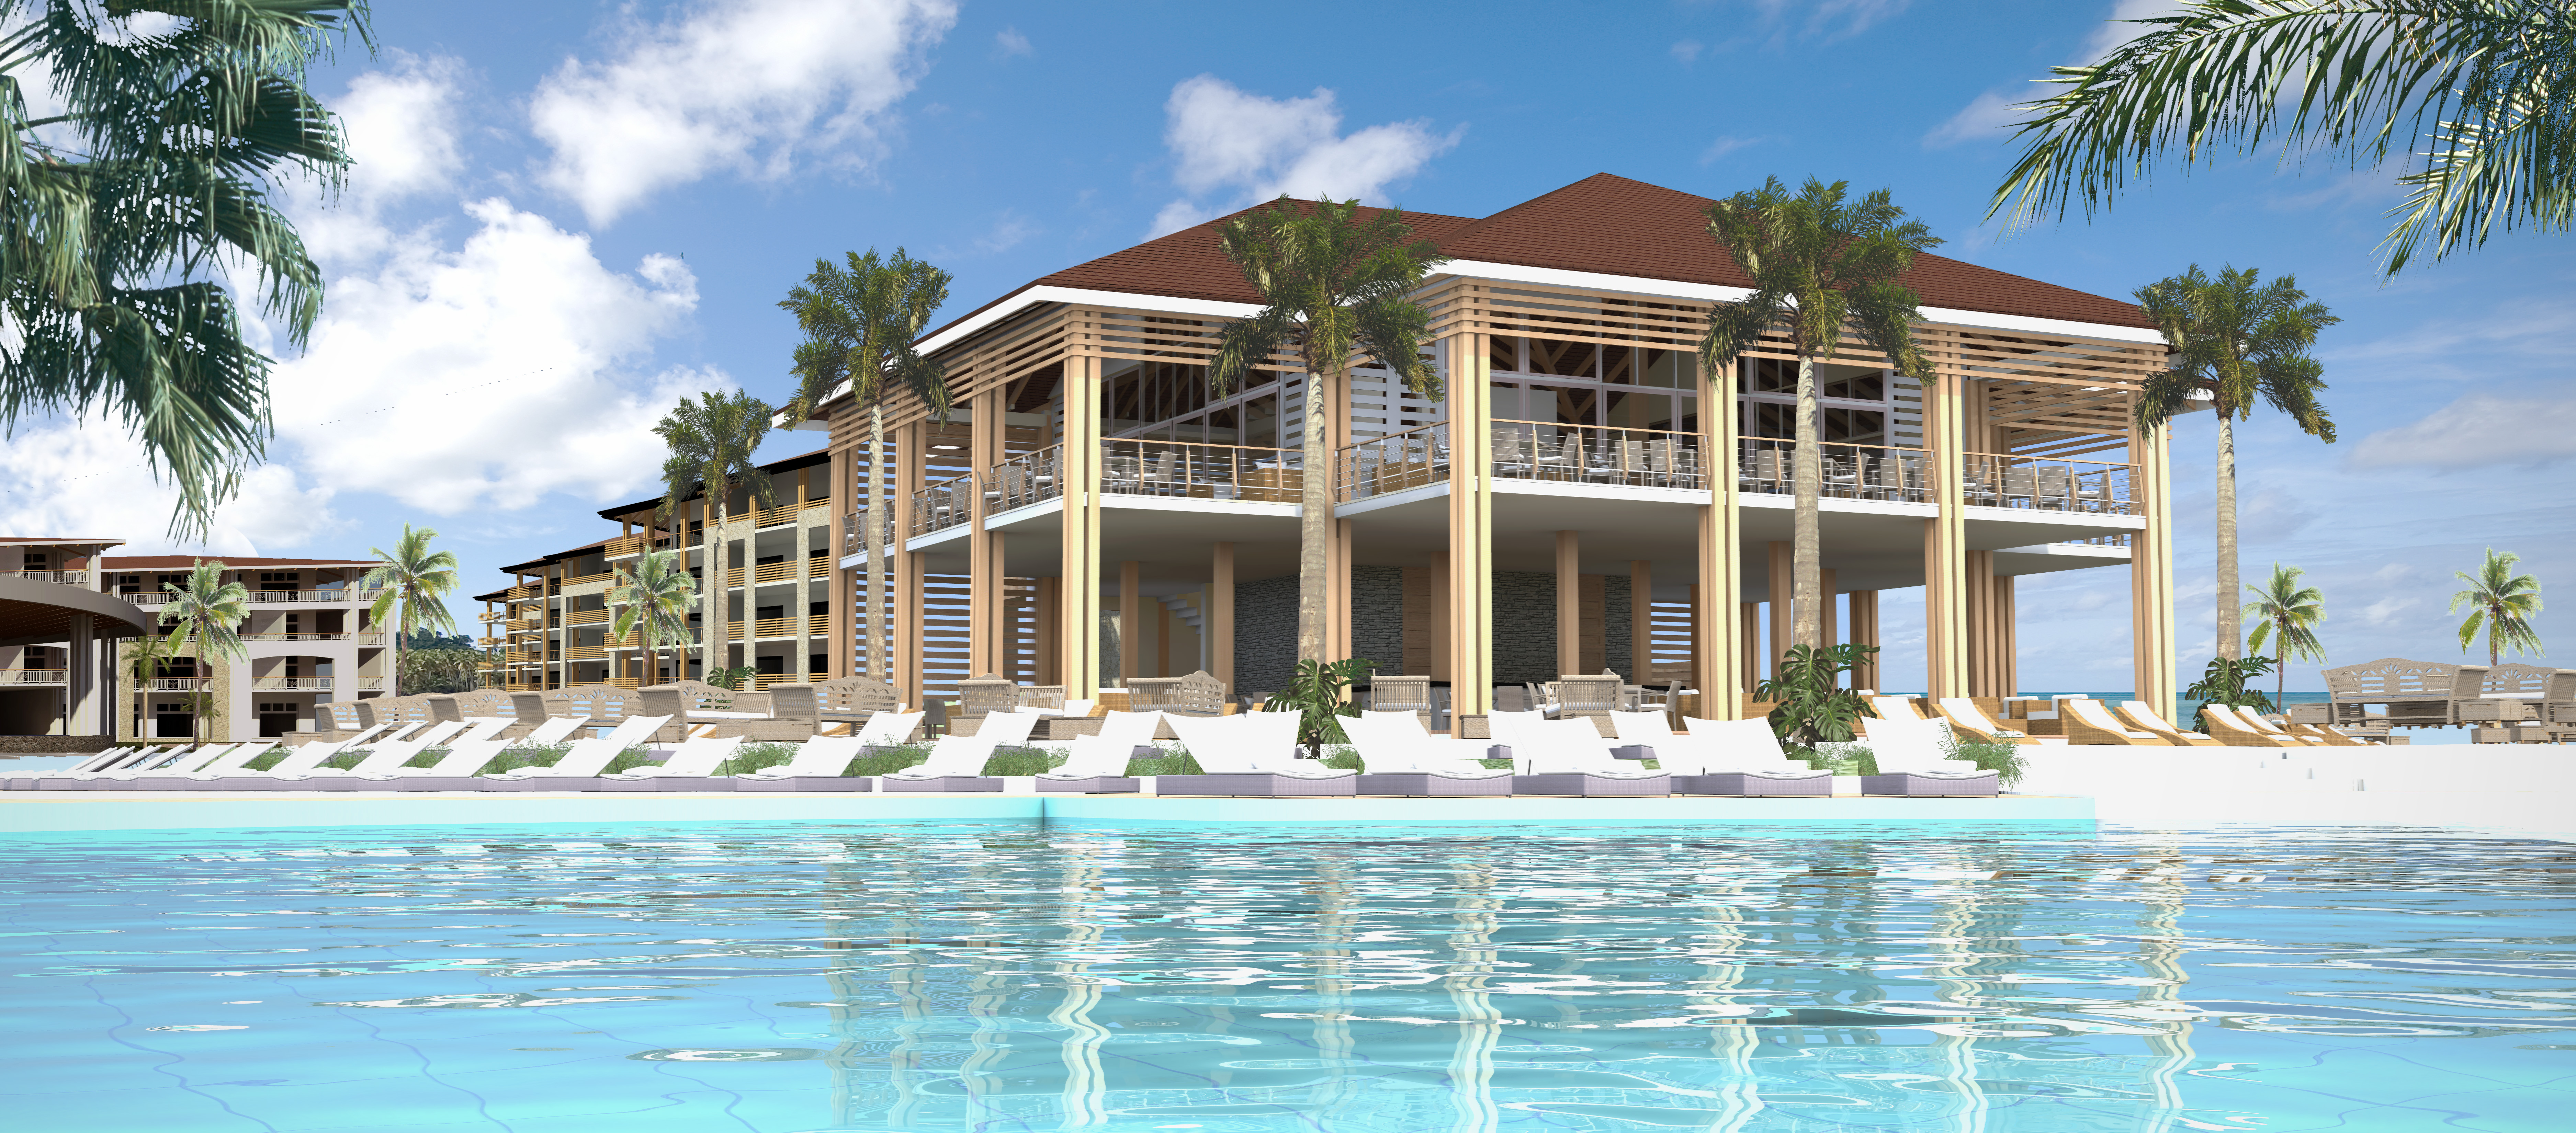 Beach Real Estate Developers : The harlequin hotels resorts creating first class